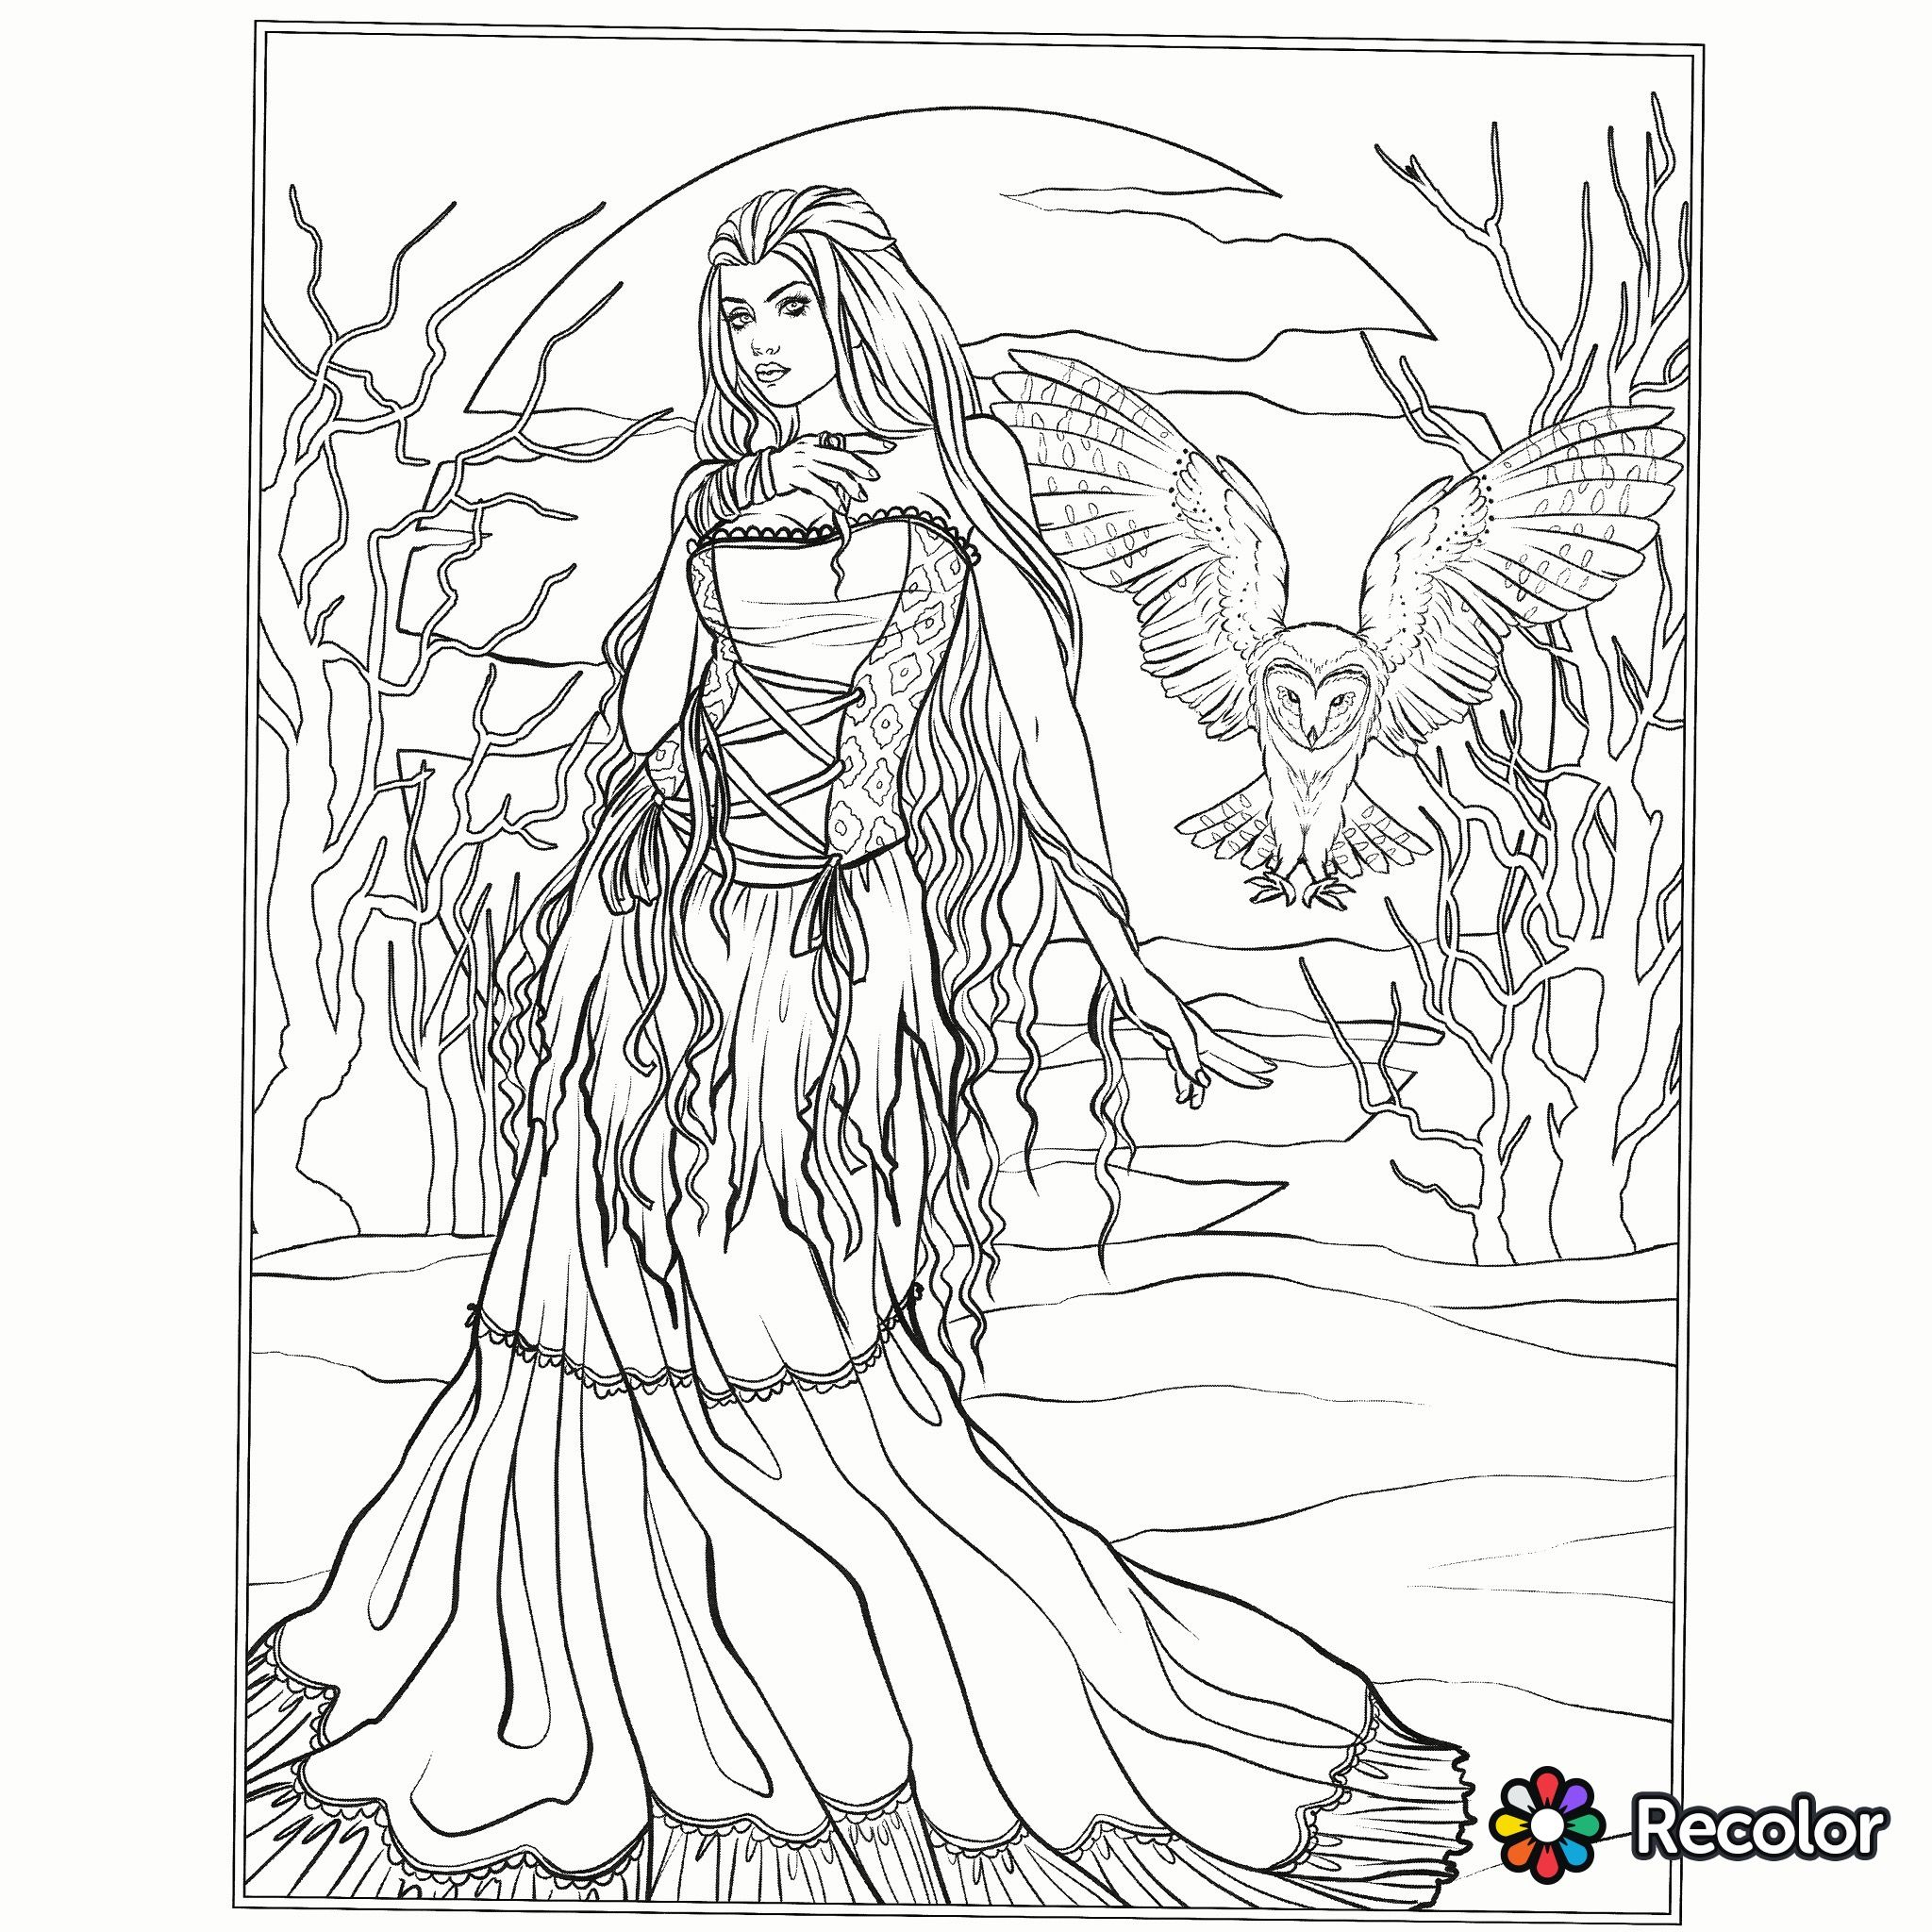 Halloween Gothic coloring page | Fantasy Coloring Pages for Adults ...